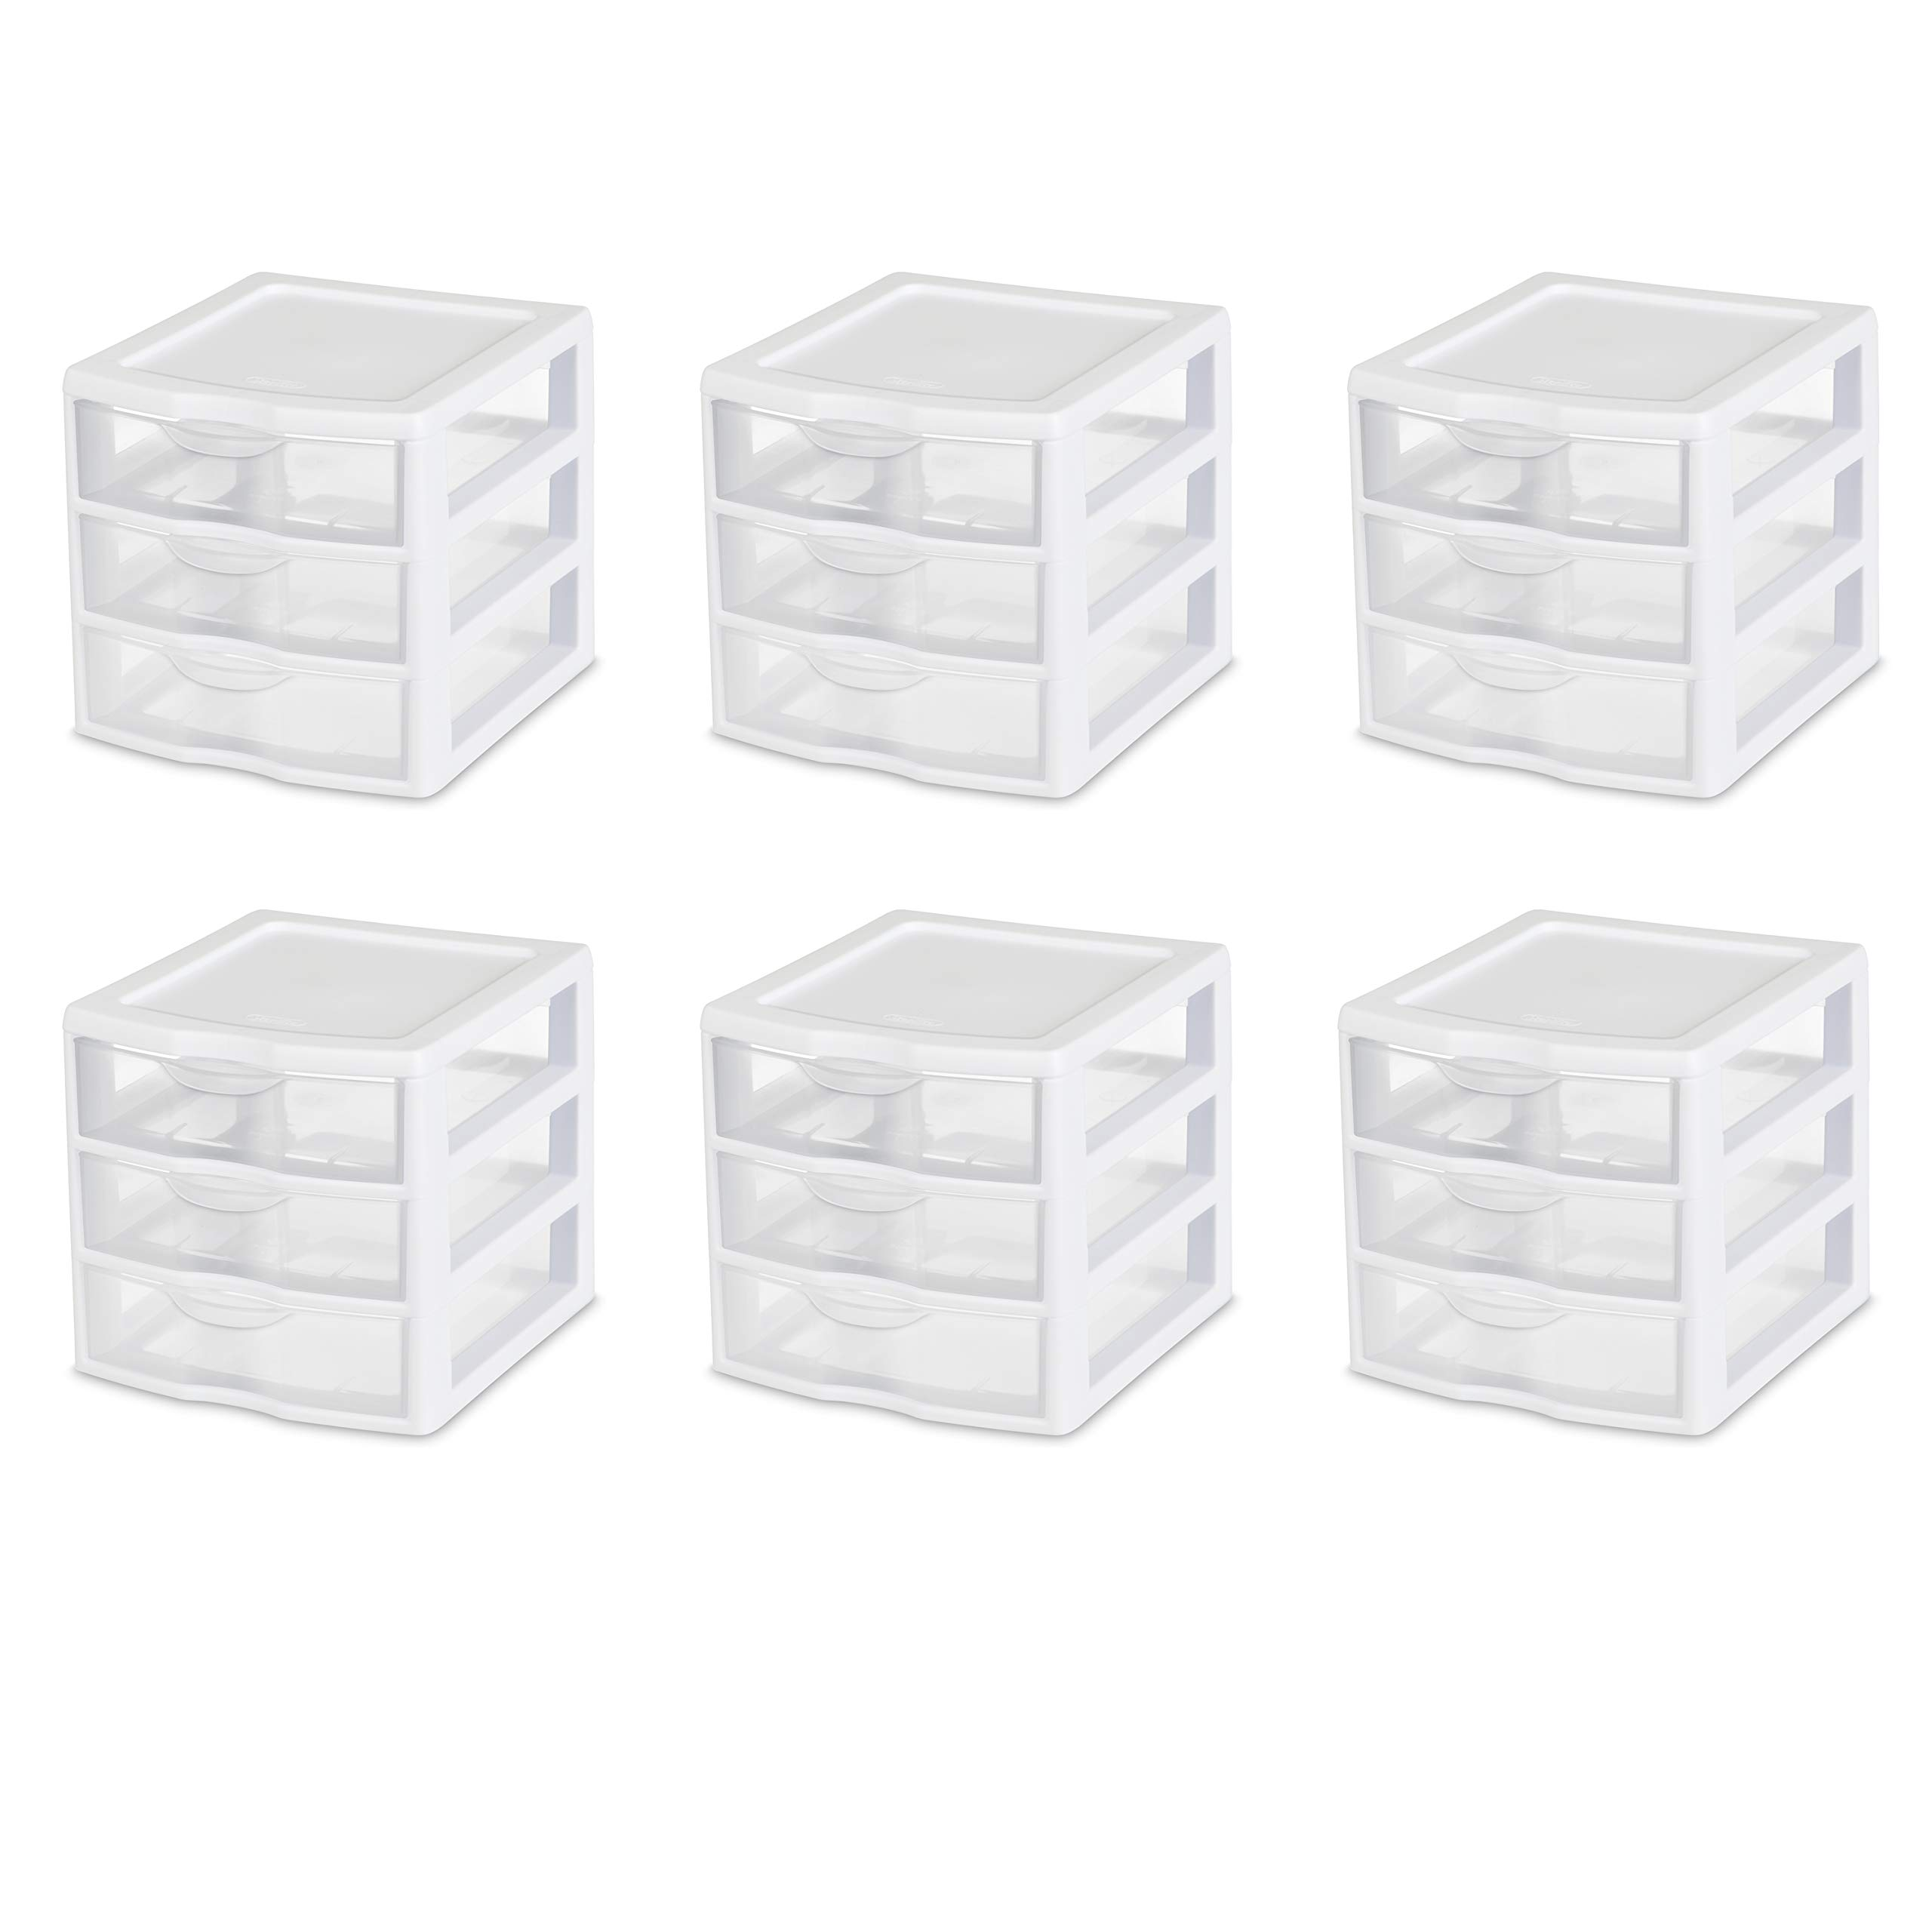 Sterilite 20738006 Small 3 Drawer Unit, White Frame with Clear Drawers, 6-Pack by STERILITE